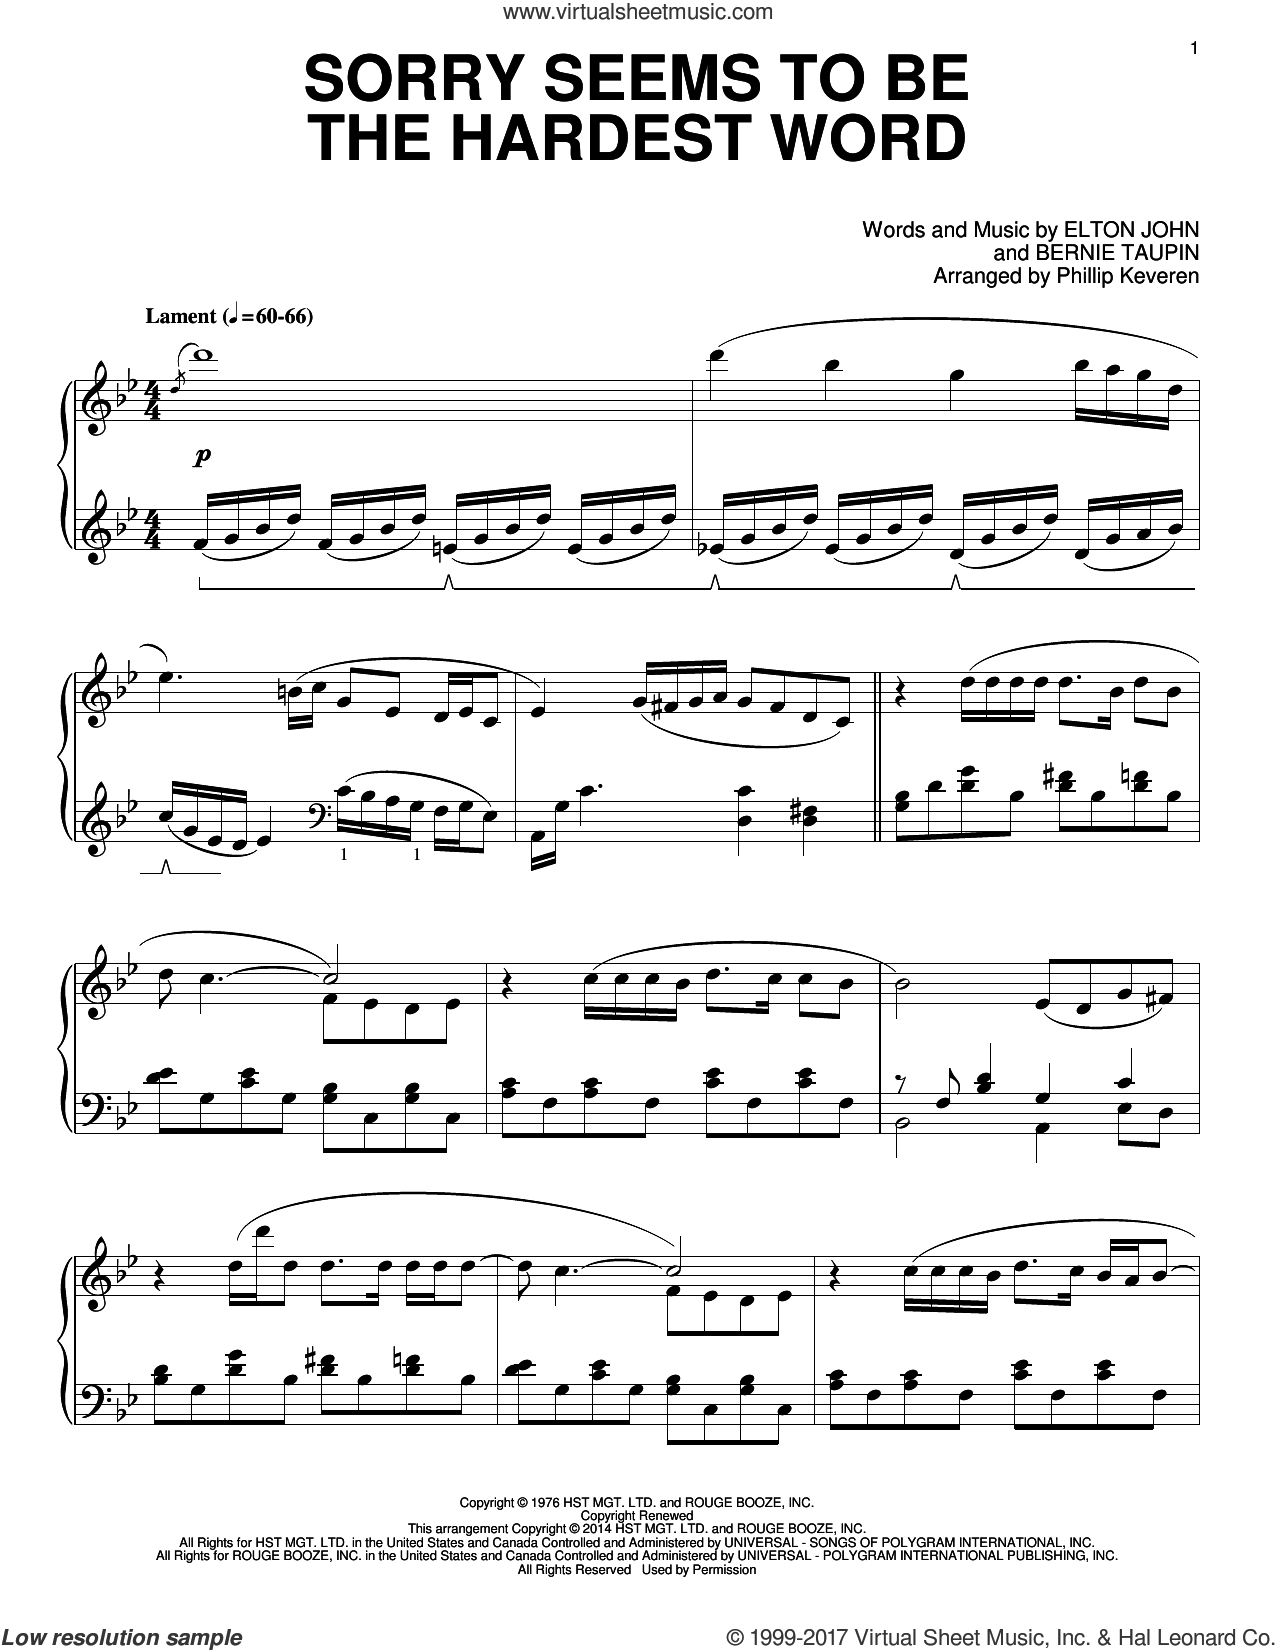 Sorry Seems To Be The Hardest Word sheet music for piano solo by Phillip Keveren, Bernie Taupin and Elton John, intermediate skill level